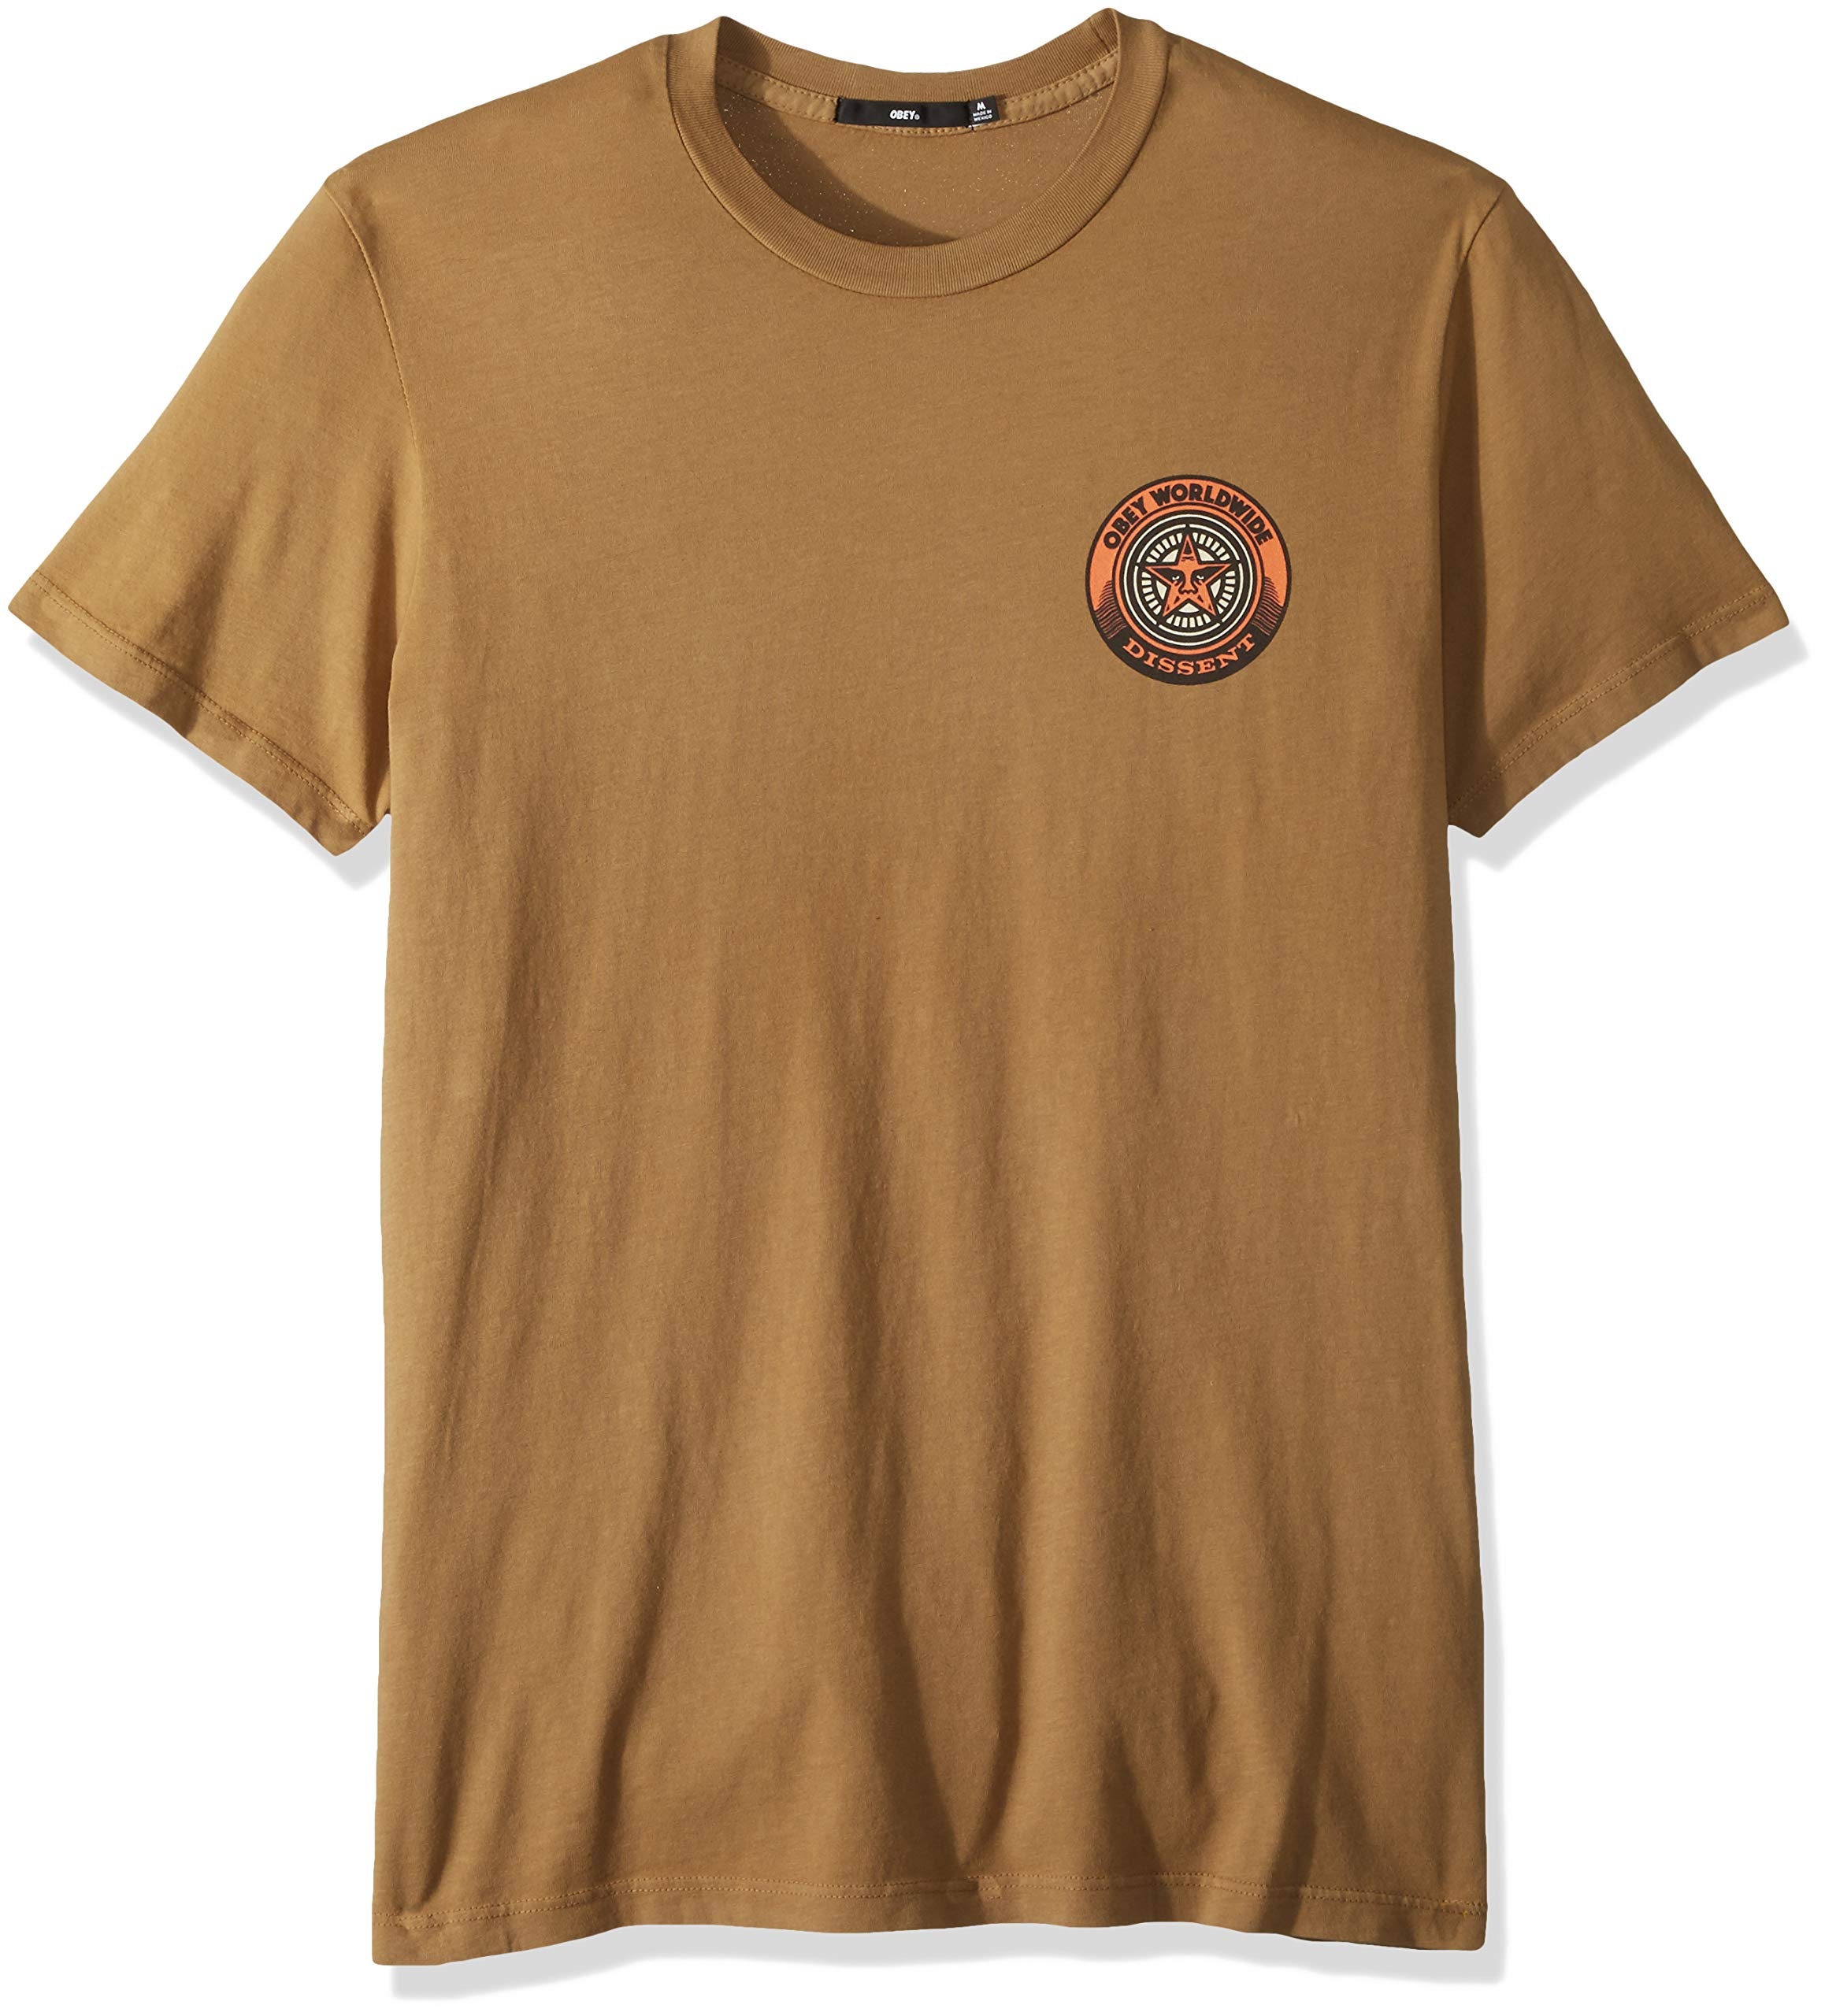 Obey Men's Dissent Short Sleeve Superior T-Shirt, Tapenade, Large